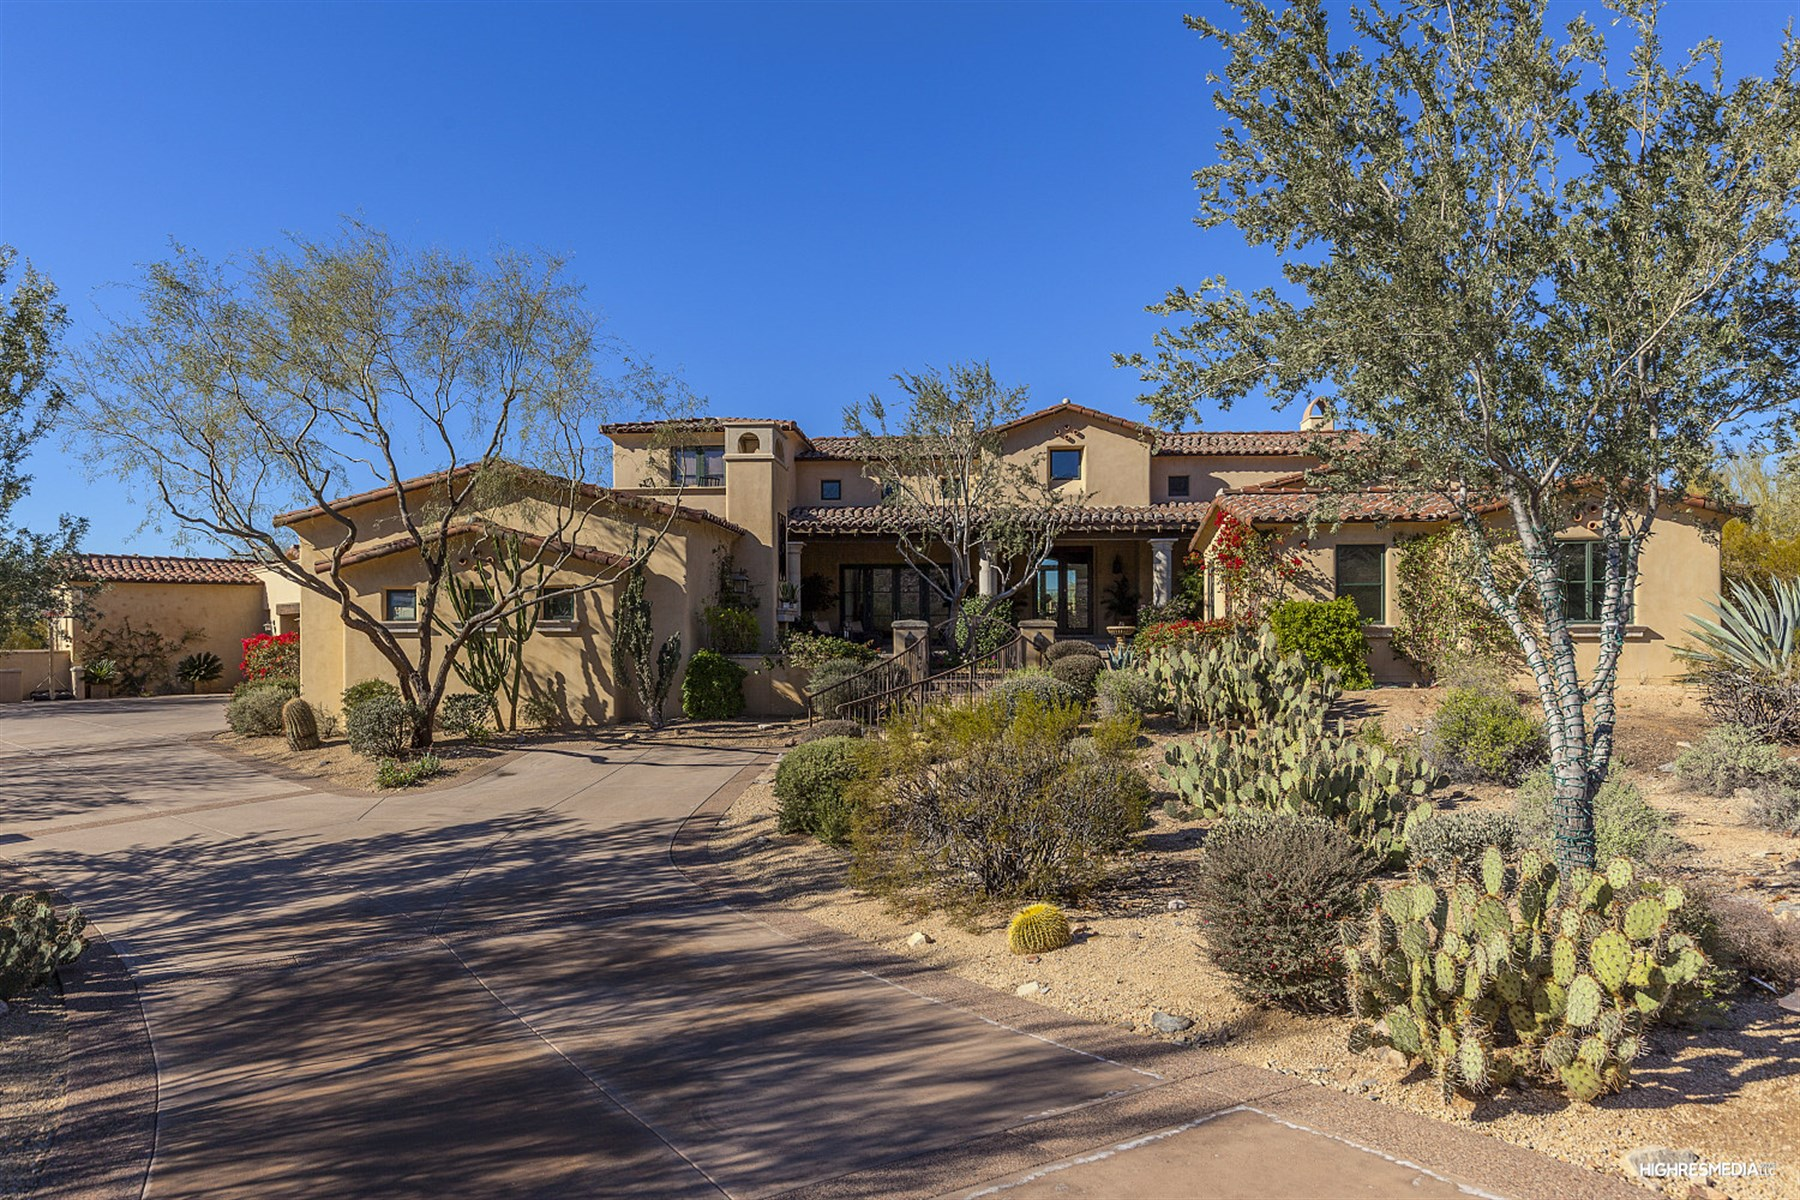 Moradia para Venda às Beautifully appointed and maintained estate 9820 E THOMPSON PEAK PKWY 835 Scottsdale, Arizona 85255 Estados Unidos